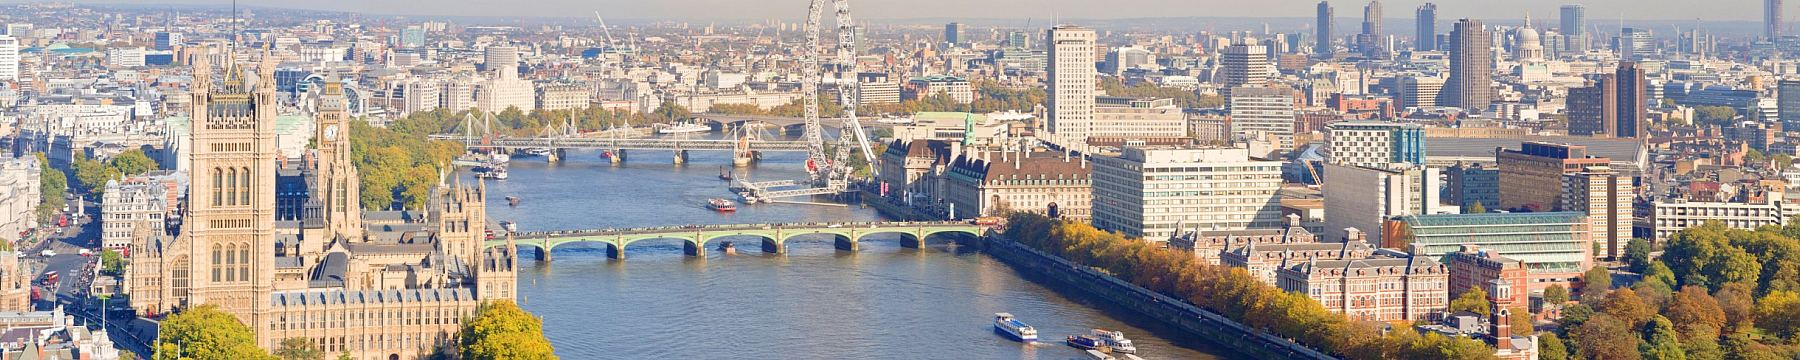 London panorama from the air